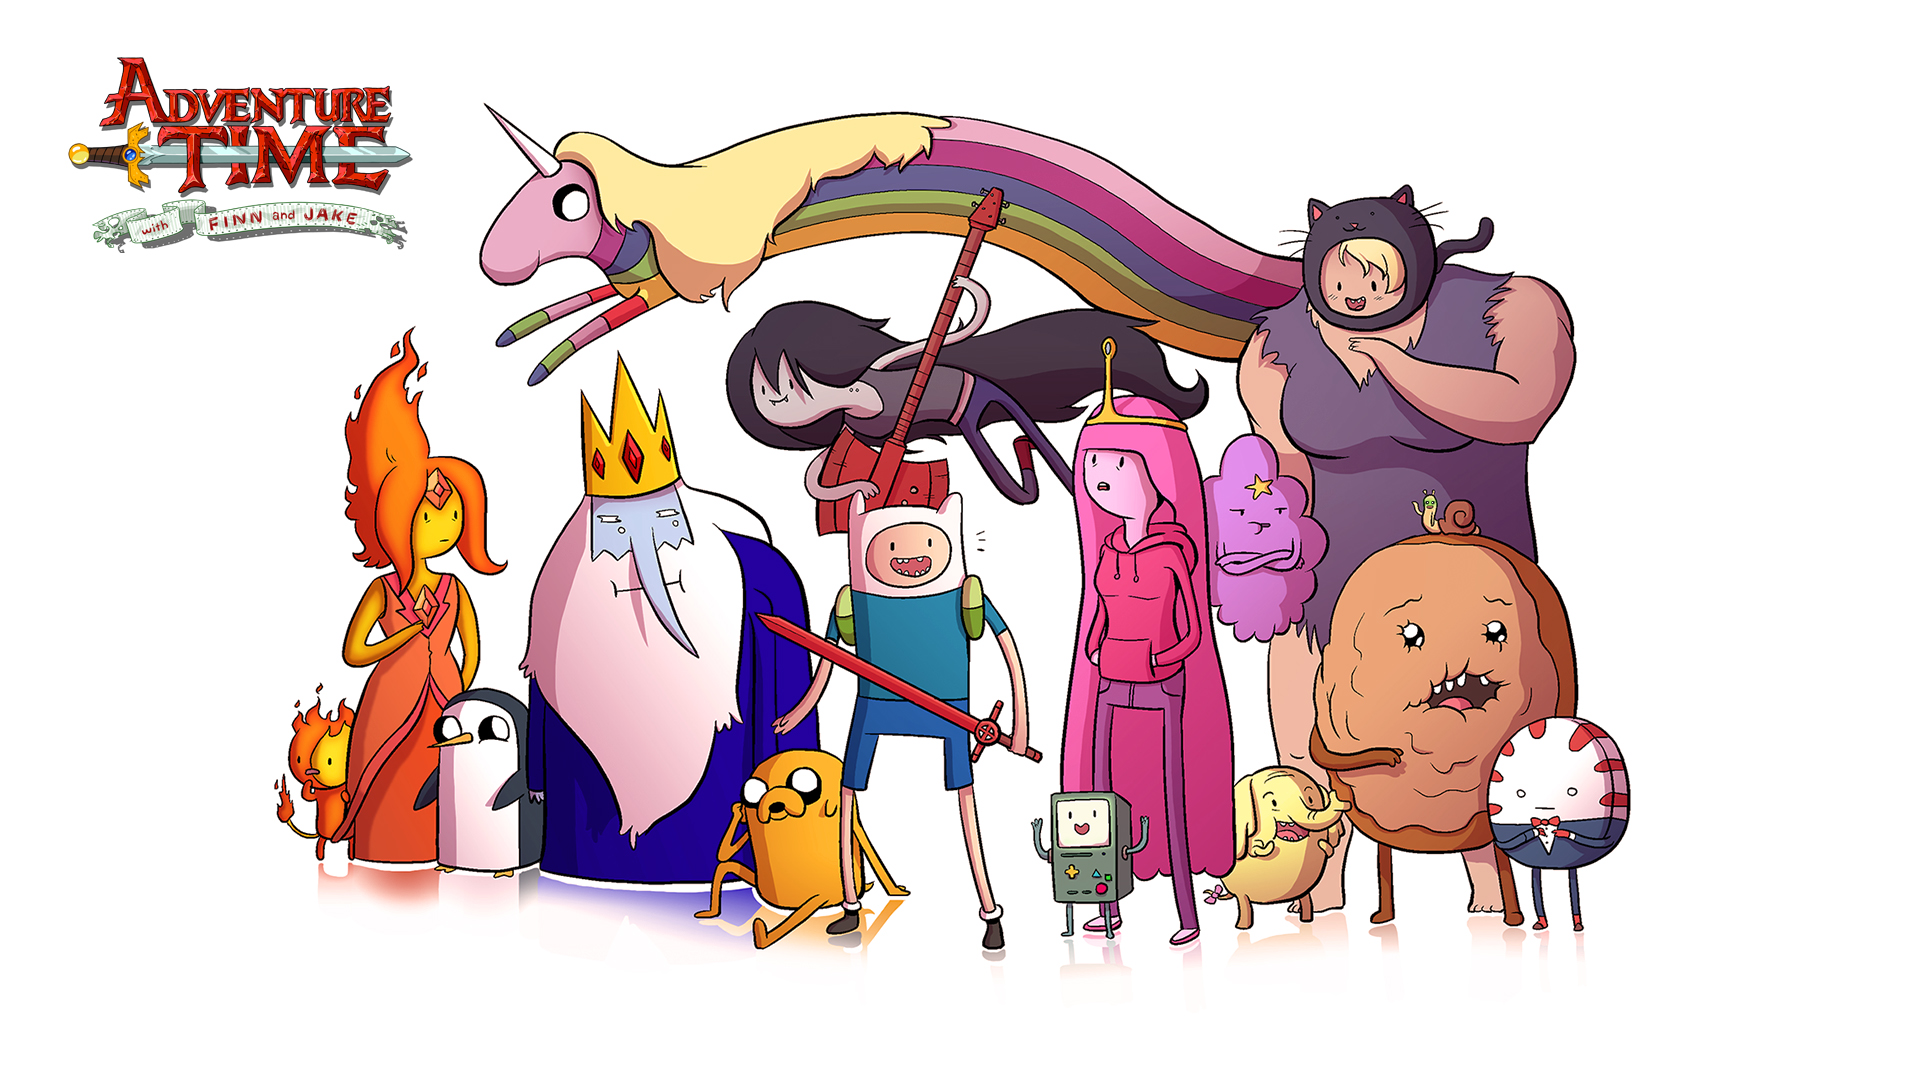 Adventure time wallpapers pictures images adventure time wallpaper adventure time wallpaper adventure time wallpaper altavistaventures Image collections